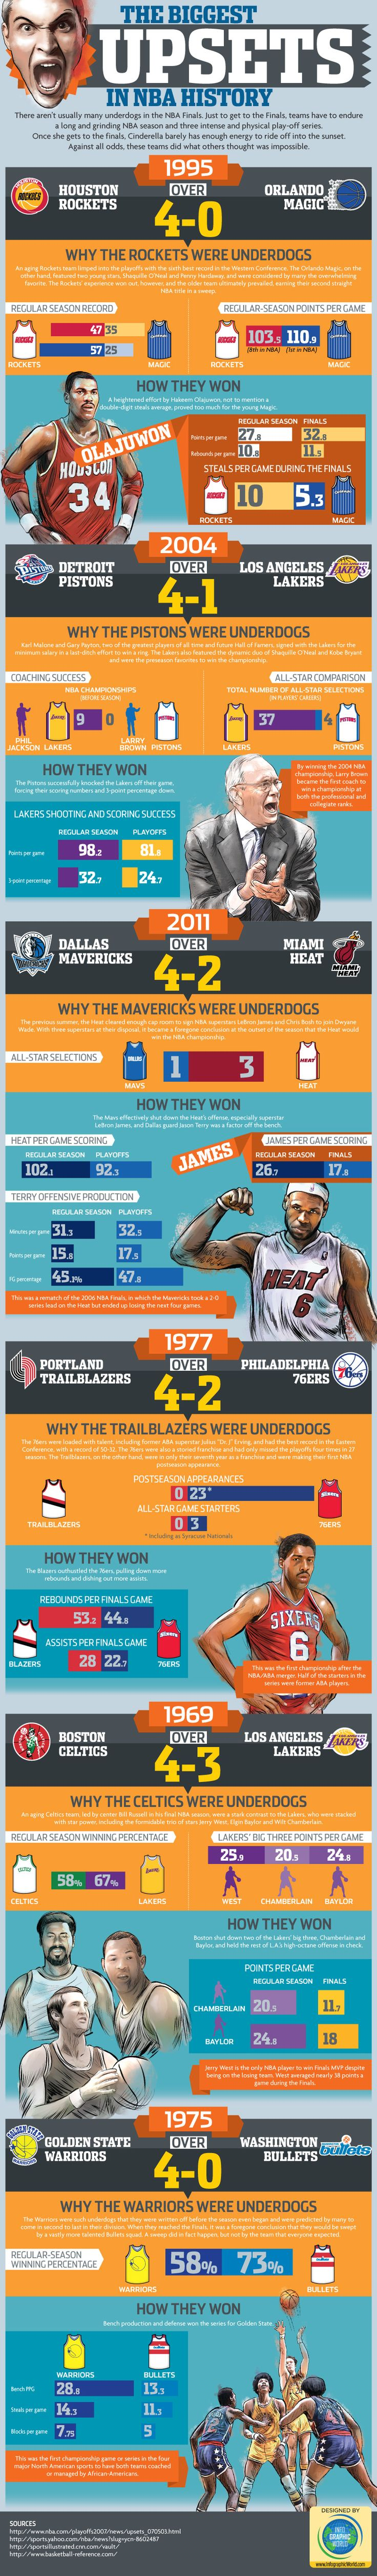 The Biggest Upsets in NBA Finals History Infographic || IGW-NBA-Finals-6june2013 || #NBA #basketball